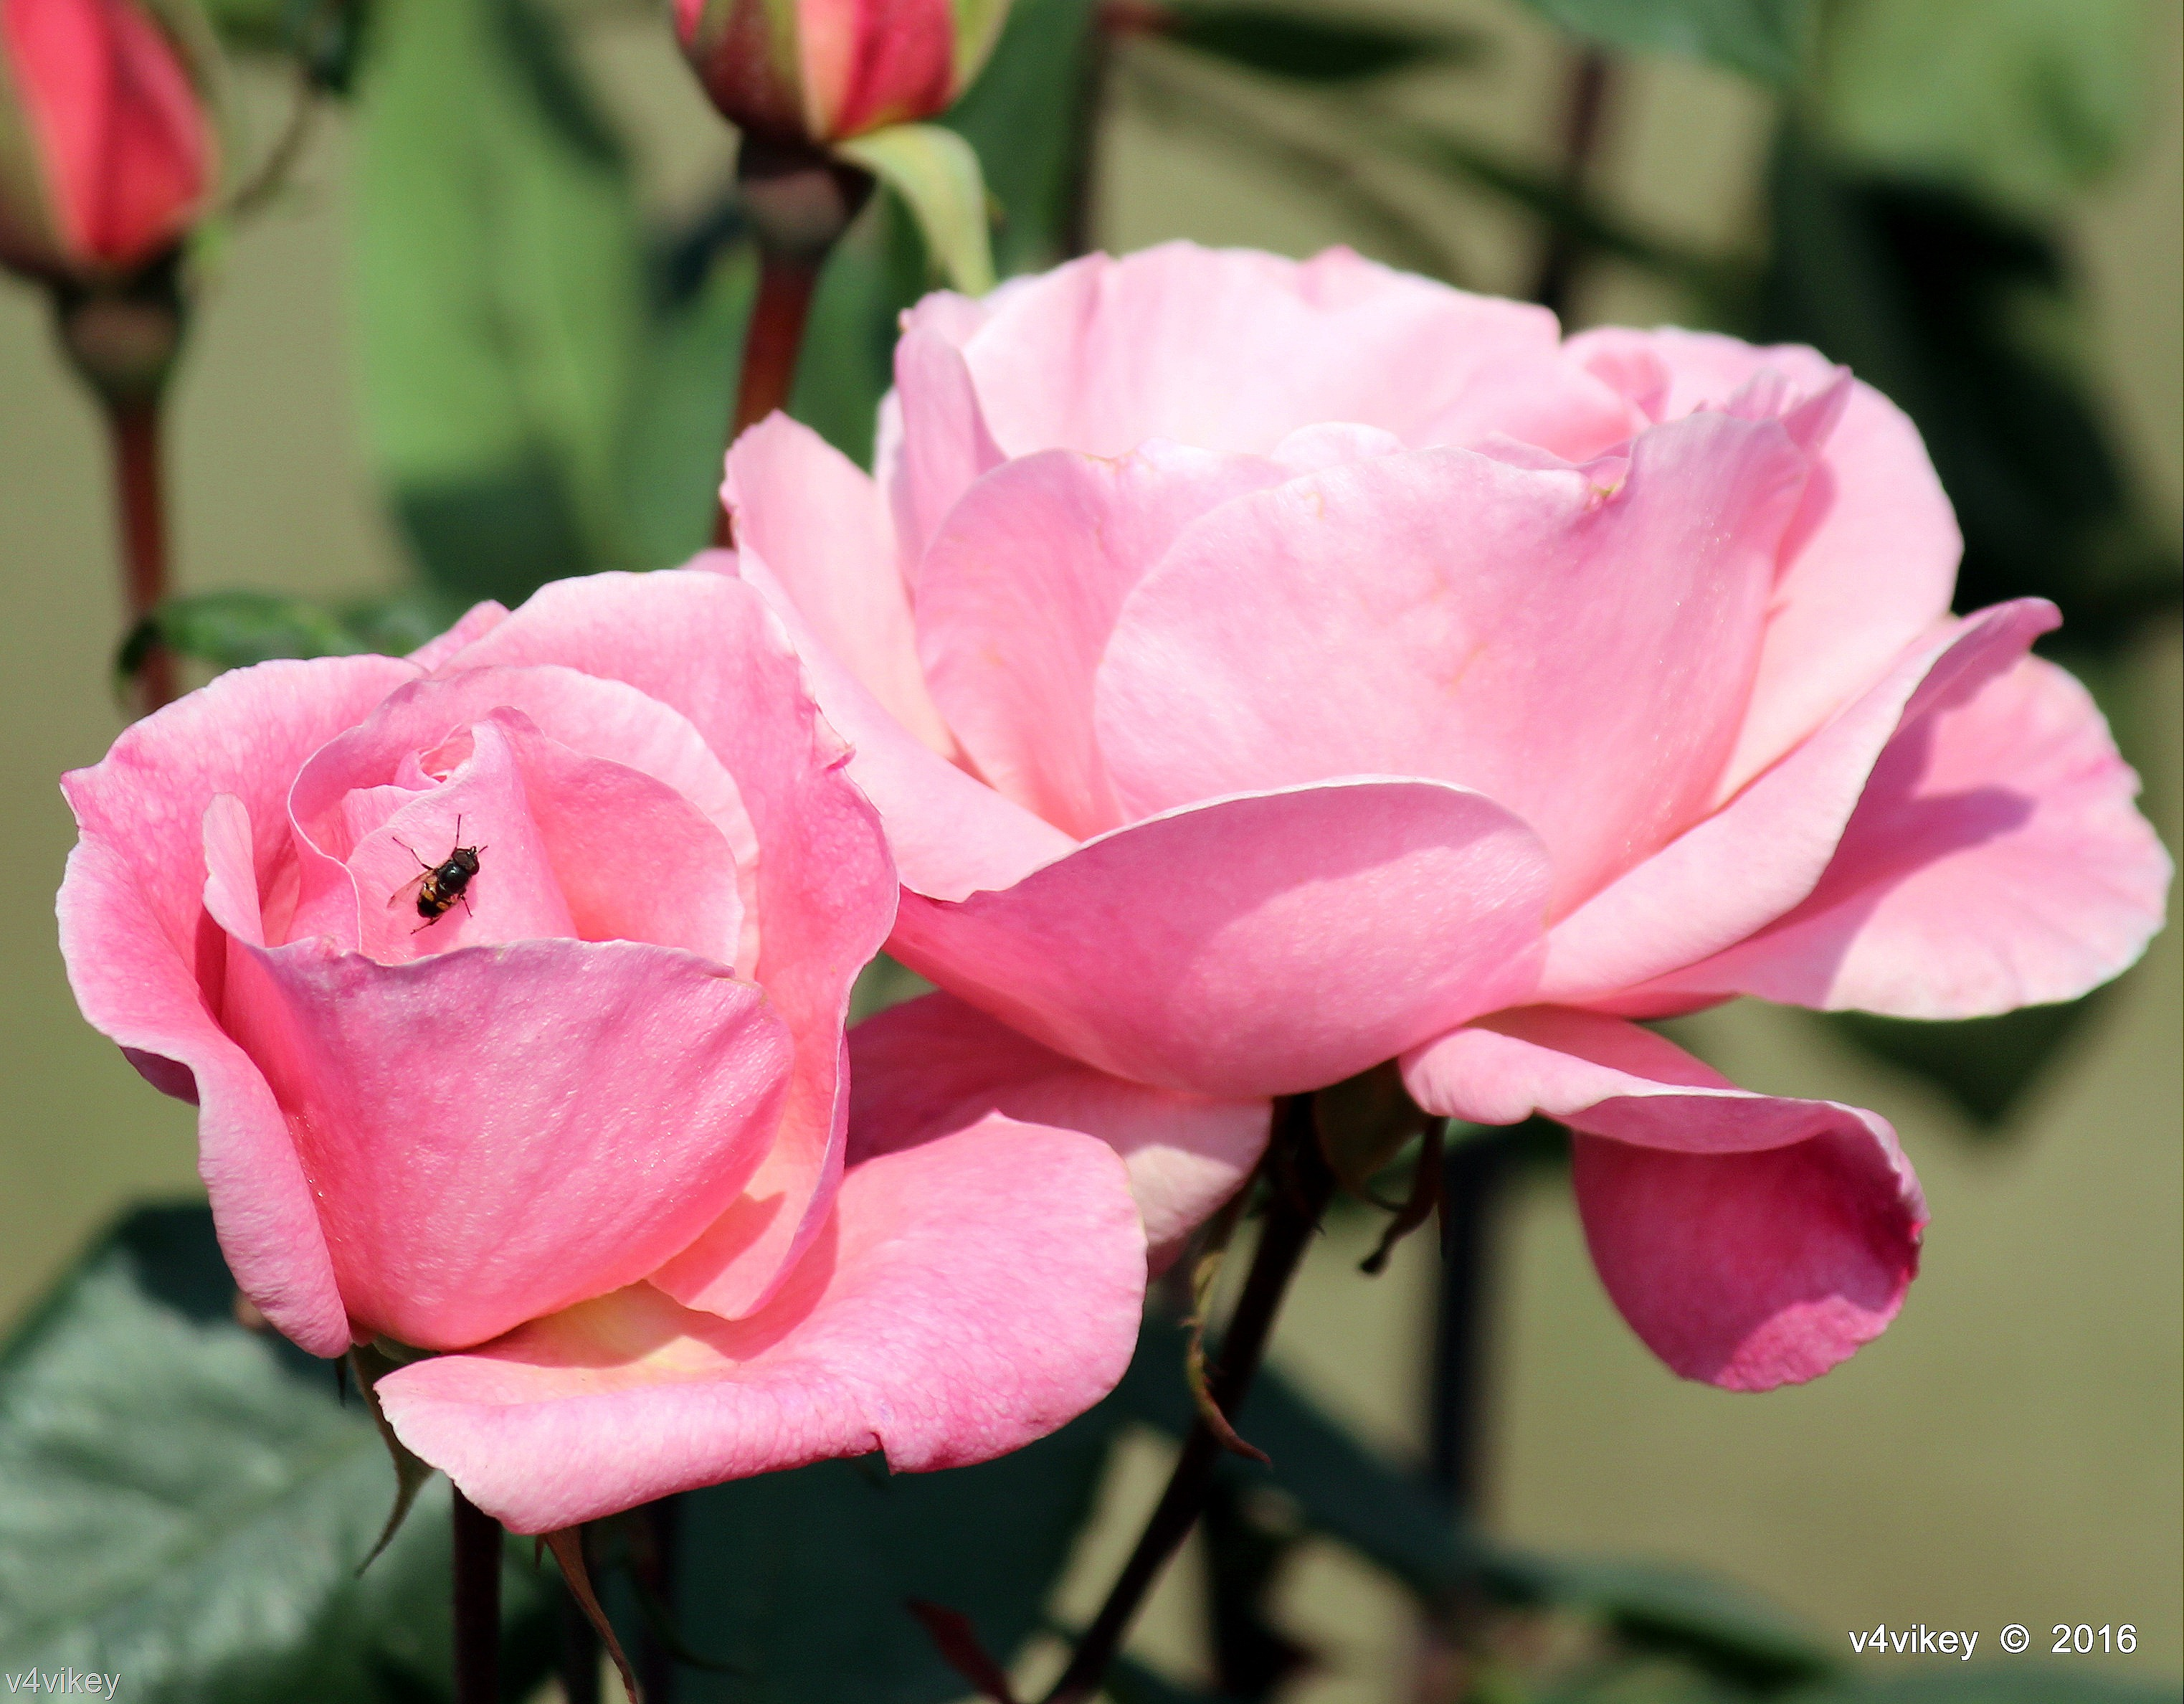 Wallpaper Of Two Pink Color Rose Flowers Wallpaper Tadka